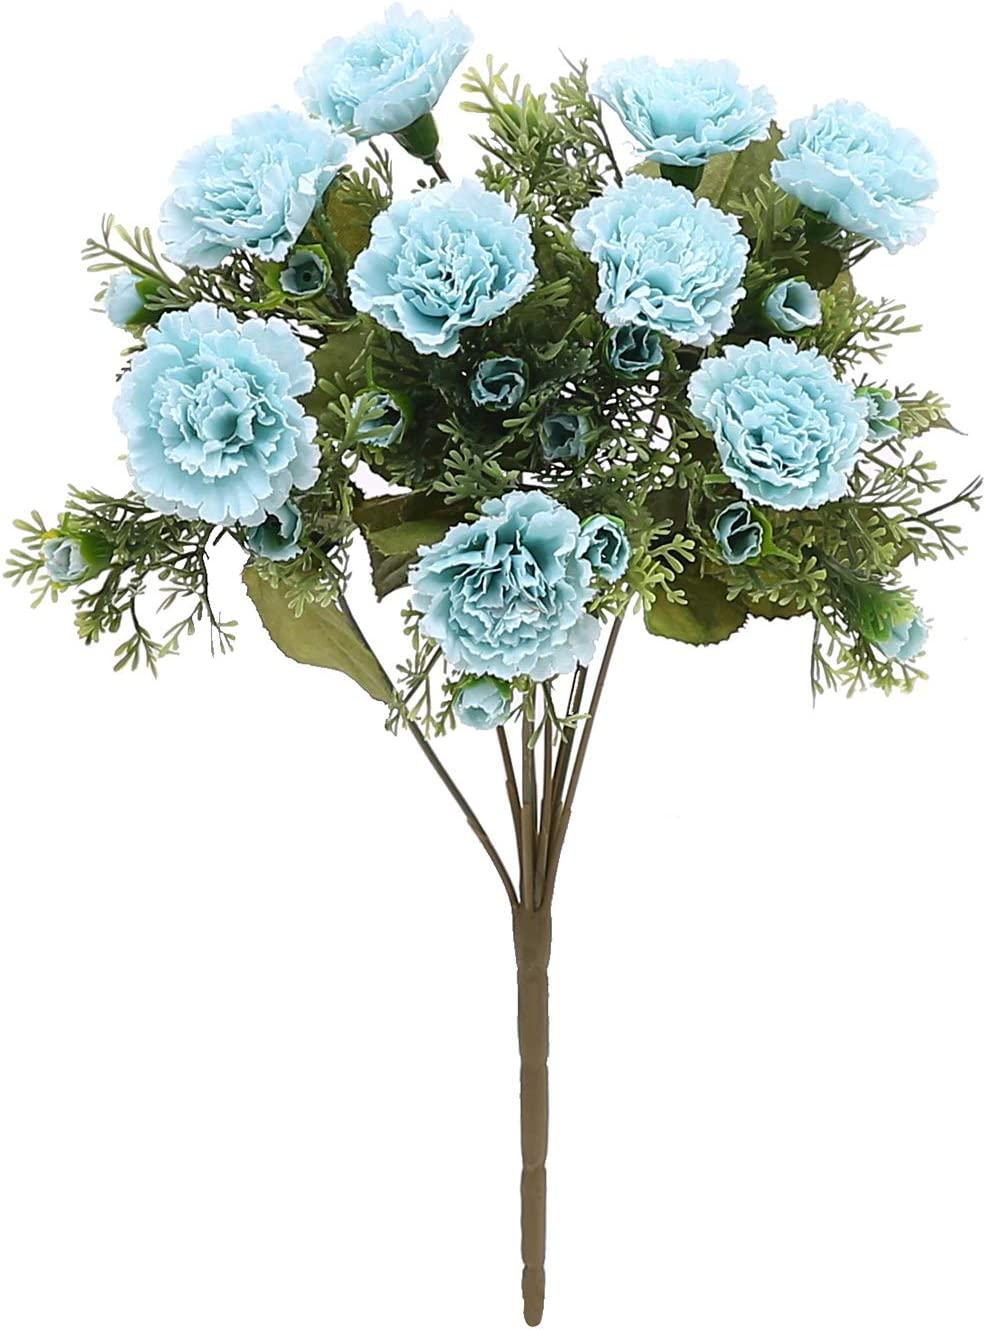 N/C Carnation Simulation Bouquet Artificial Flowers 10 Carnation Head Fake Flowers for Home Wedding Decoration (Blue)